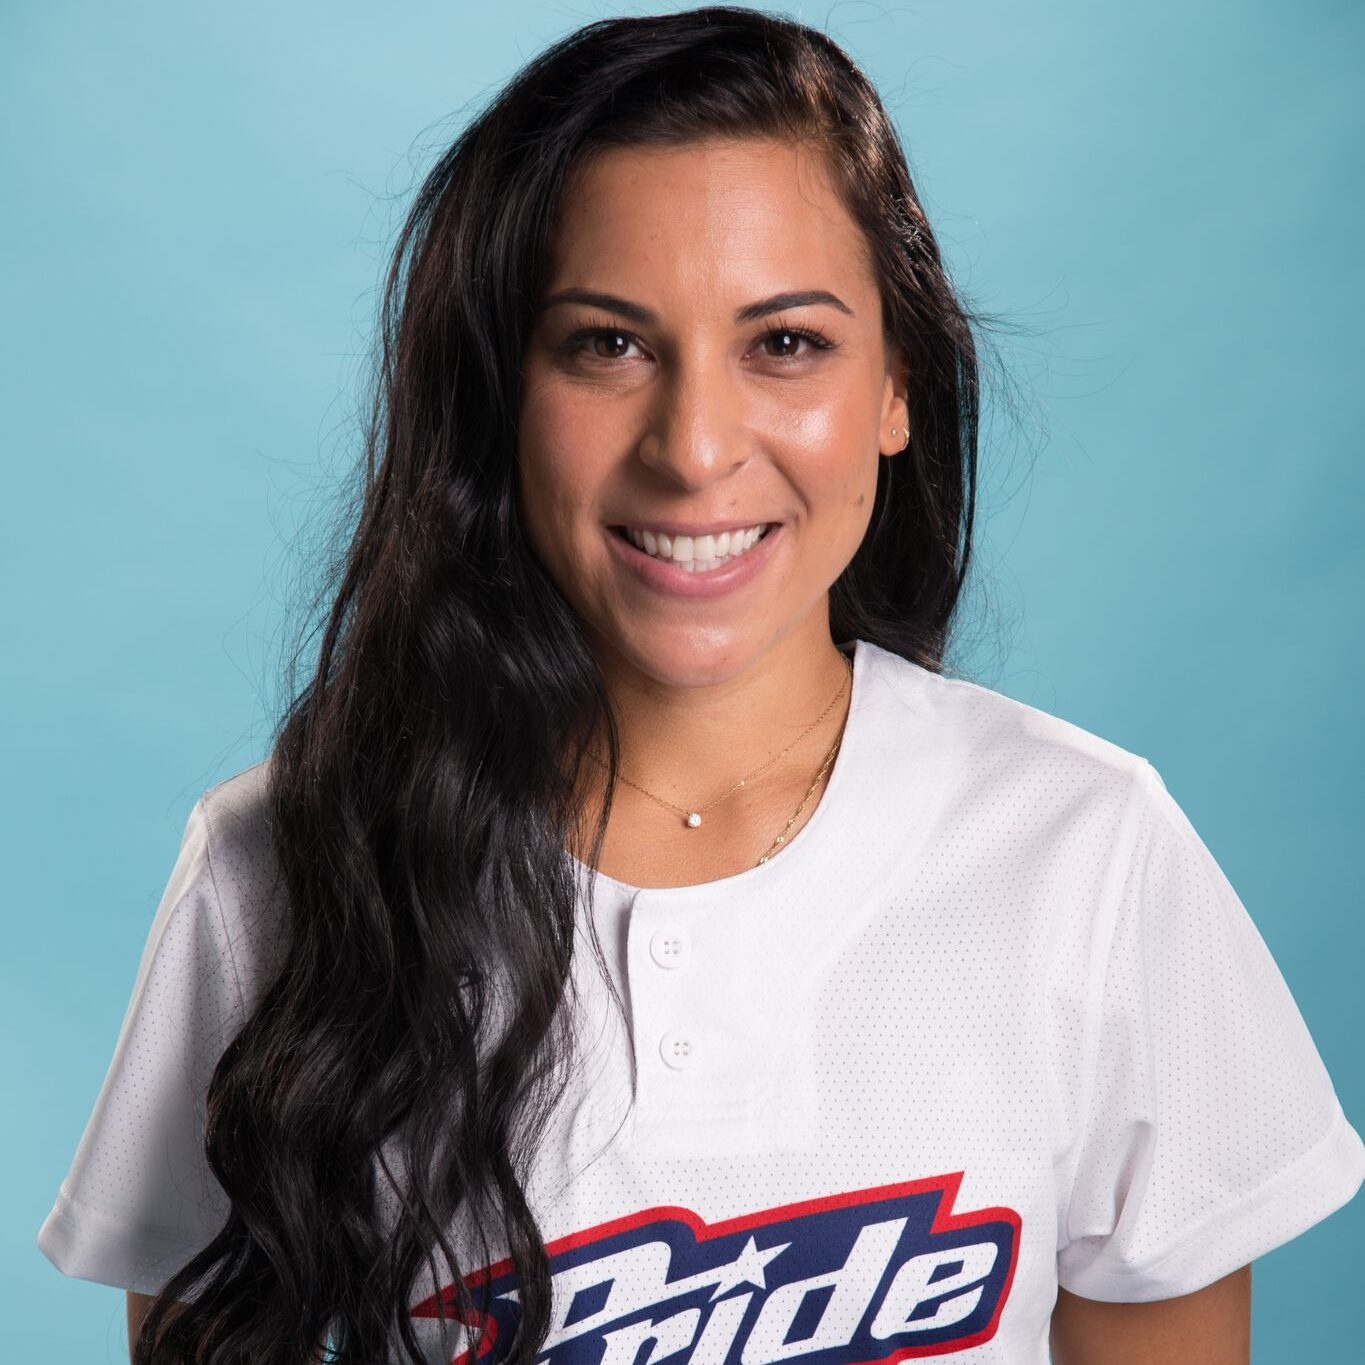 - Sierra Romero plays as an infielder for the USSSA Pride